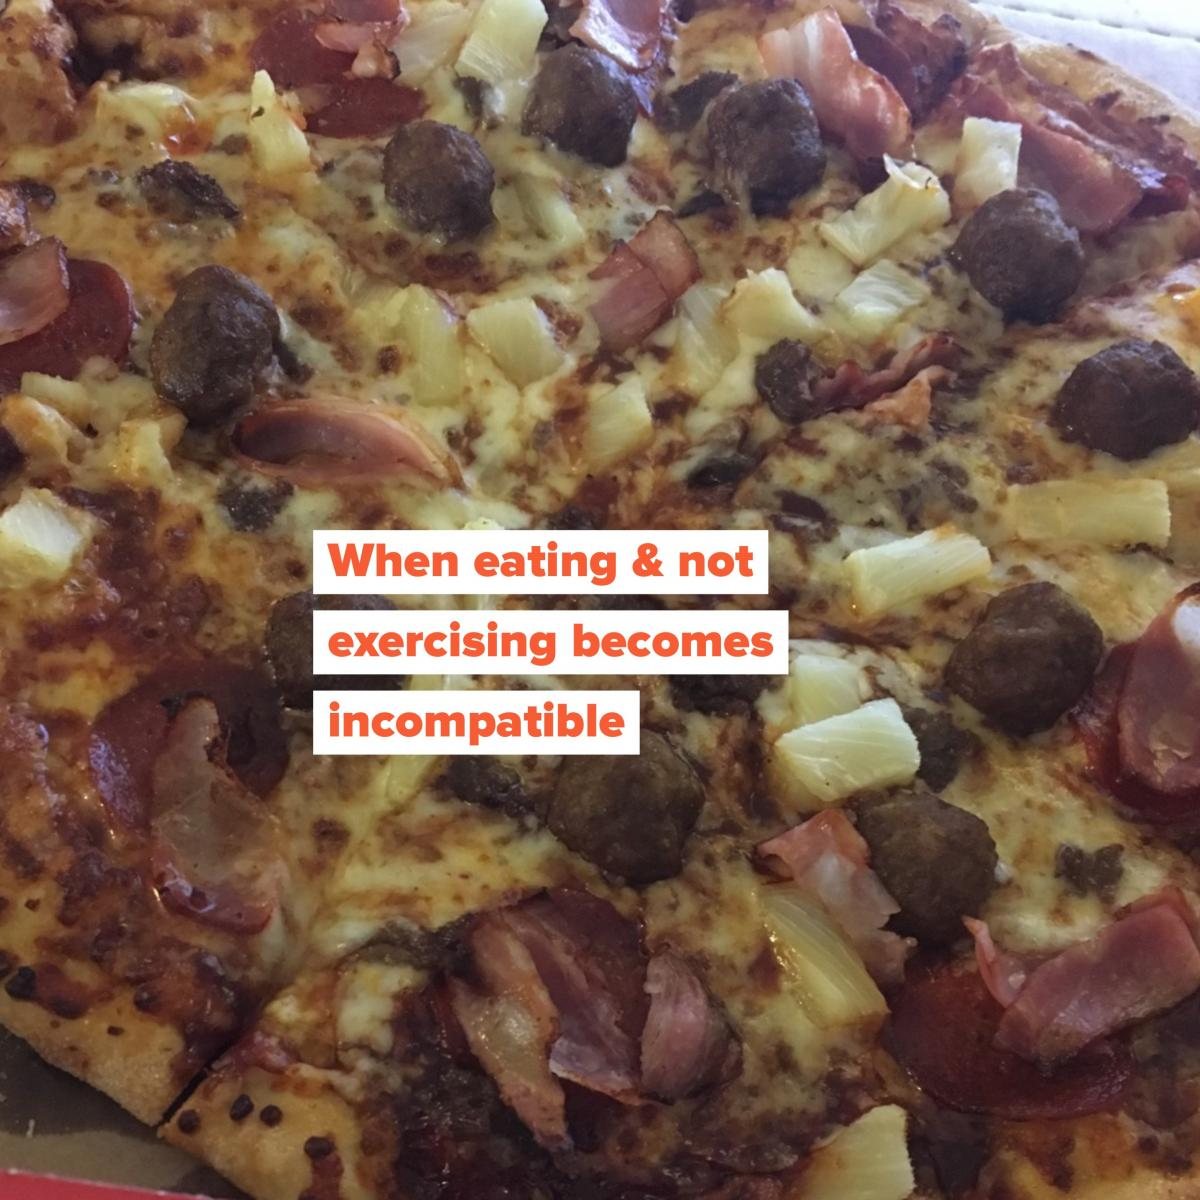 Image of pizza with writing over: When eating & not exercising becomes incompatible